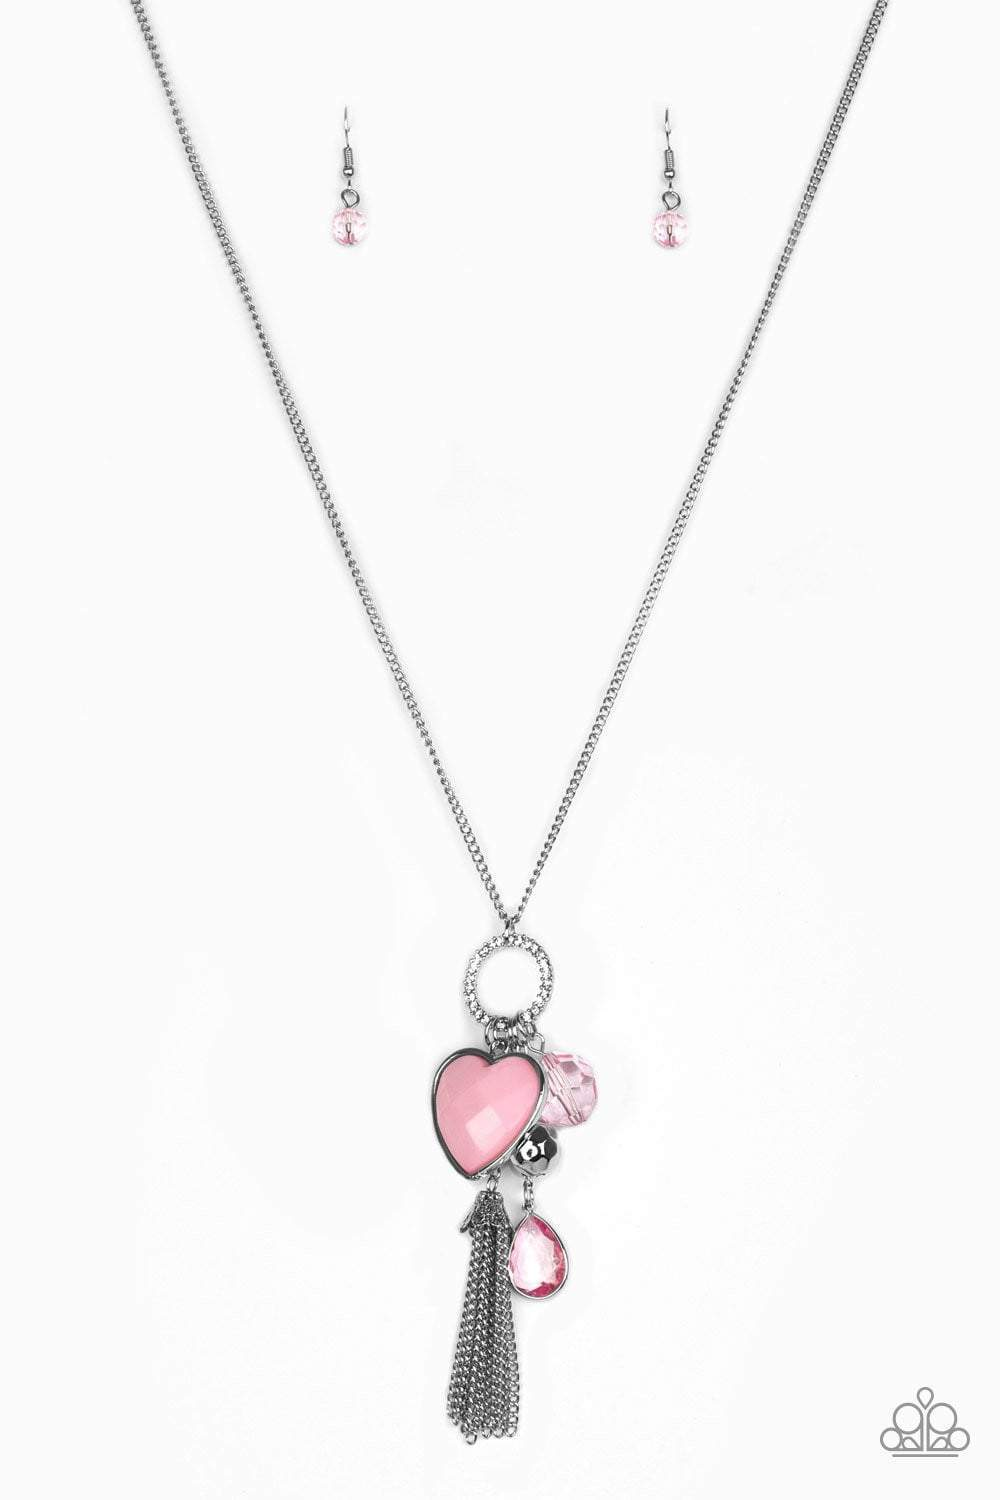 Paparazzi Haute Heartbreaker - Faceted Pink Gem Heart Charm Silver Necklace - Bling It On Online